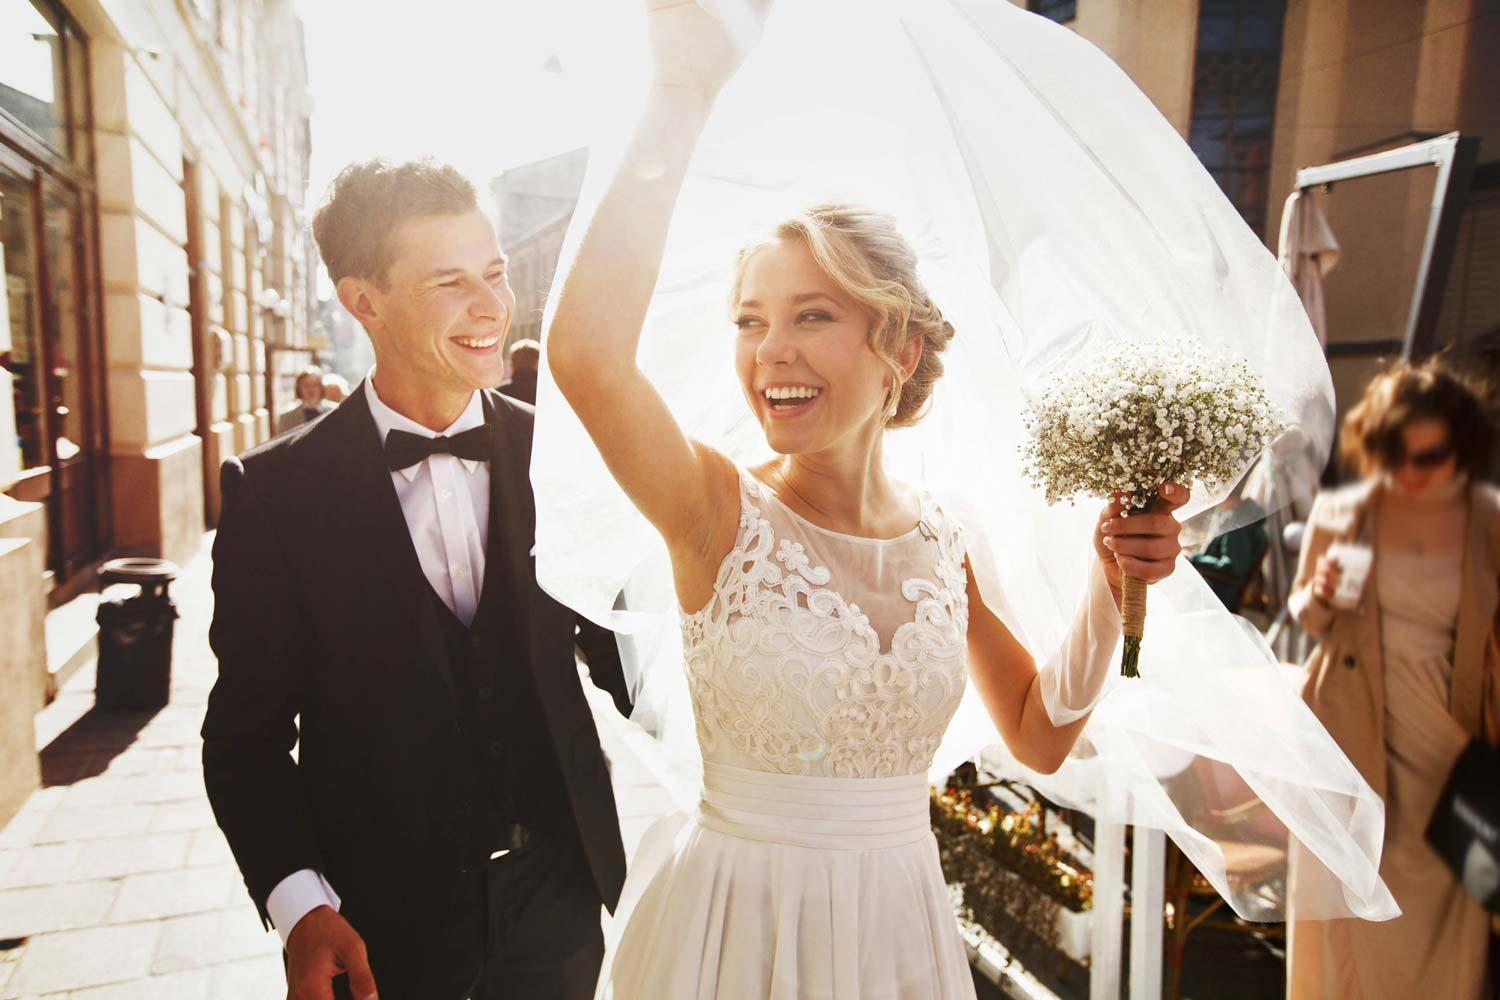 D:\Работа\SEO\GUEST POSTS\POSTS 2020\24.02.2020\Ryan 7 Pros and Cons of Getting Married In College\shutterstock_284165645.jpg